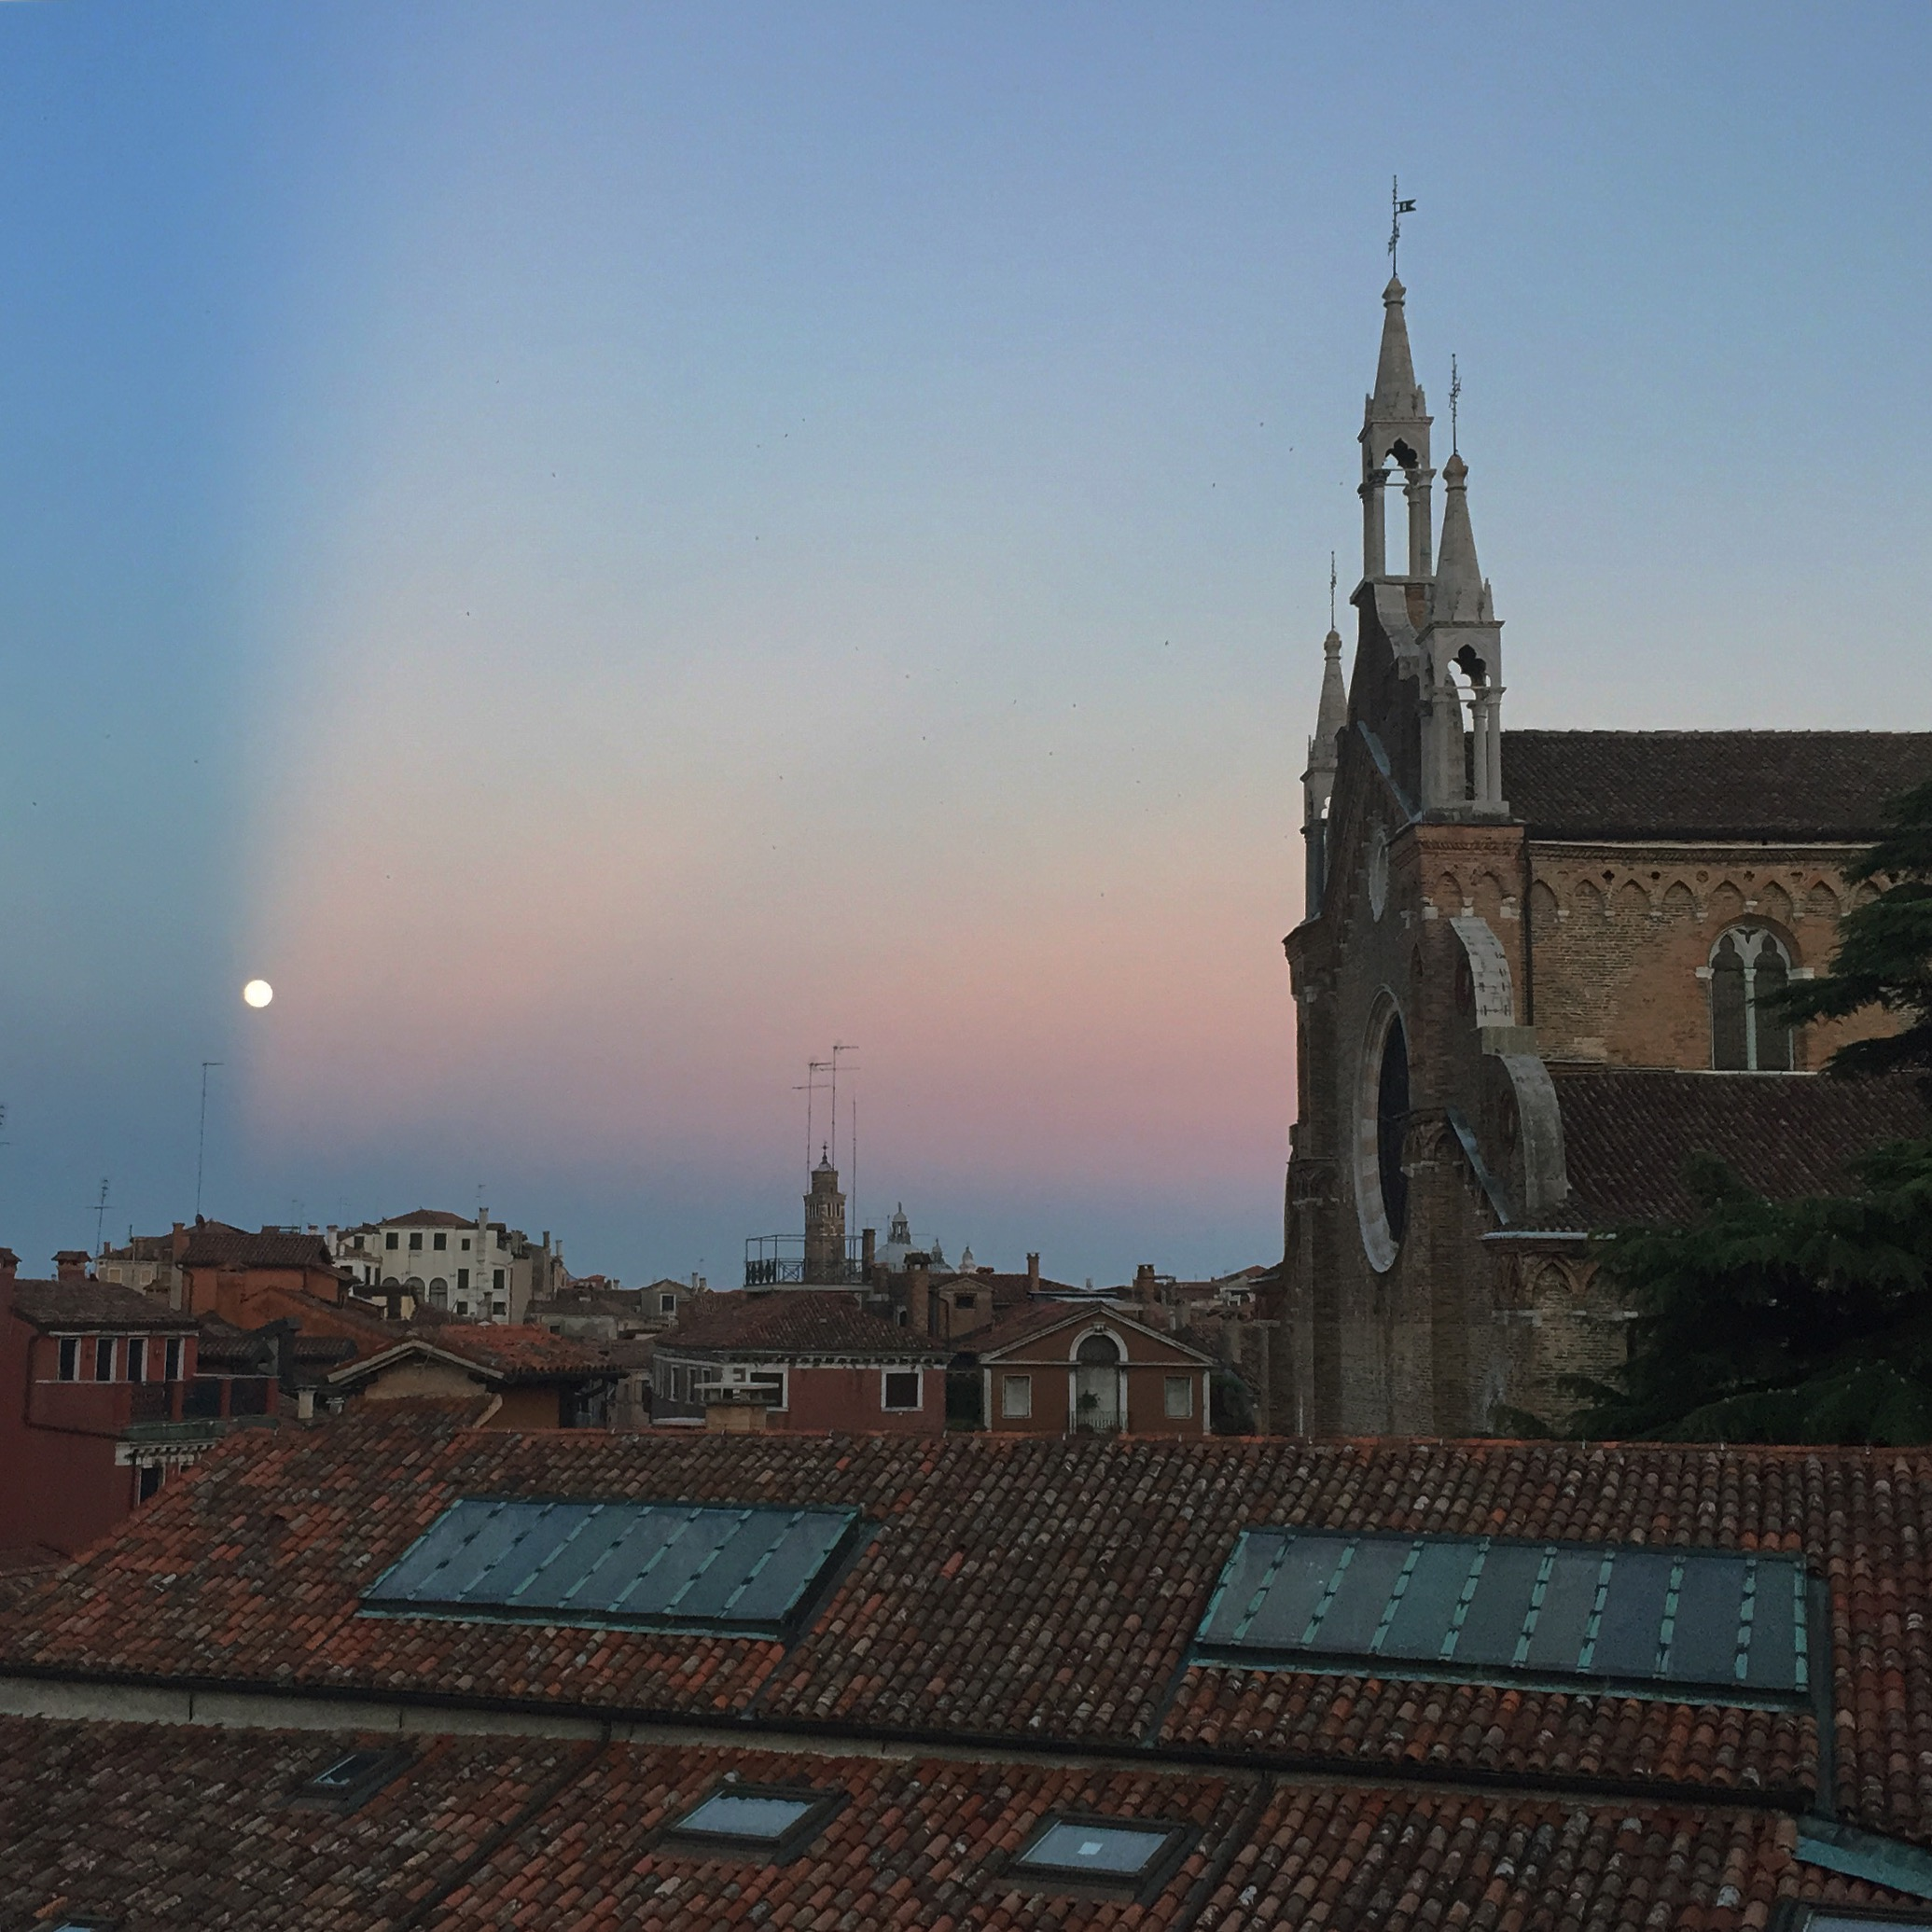 A view of the Basilica dei Frari from an apartment window.